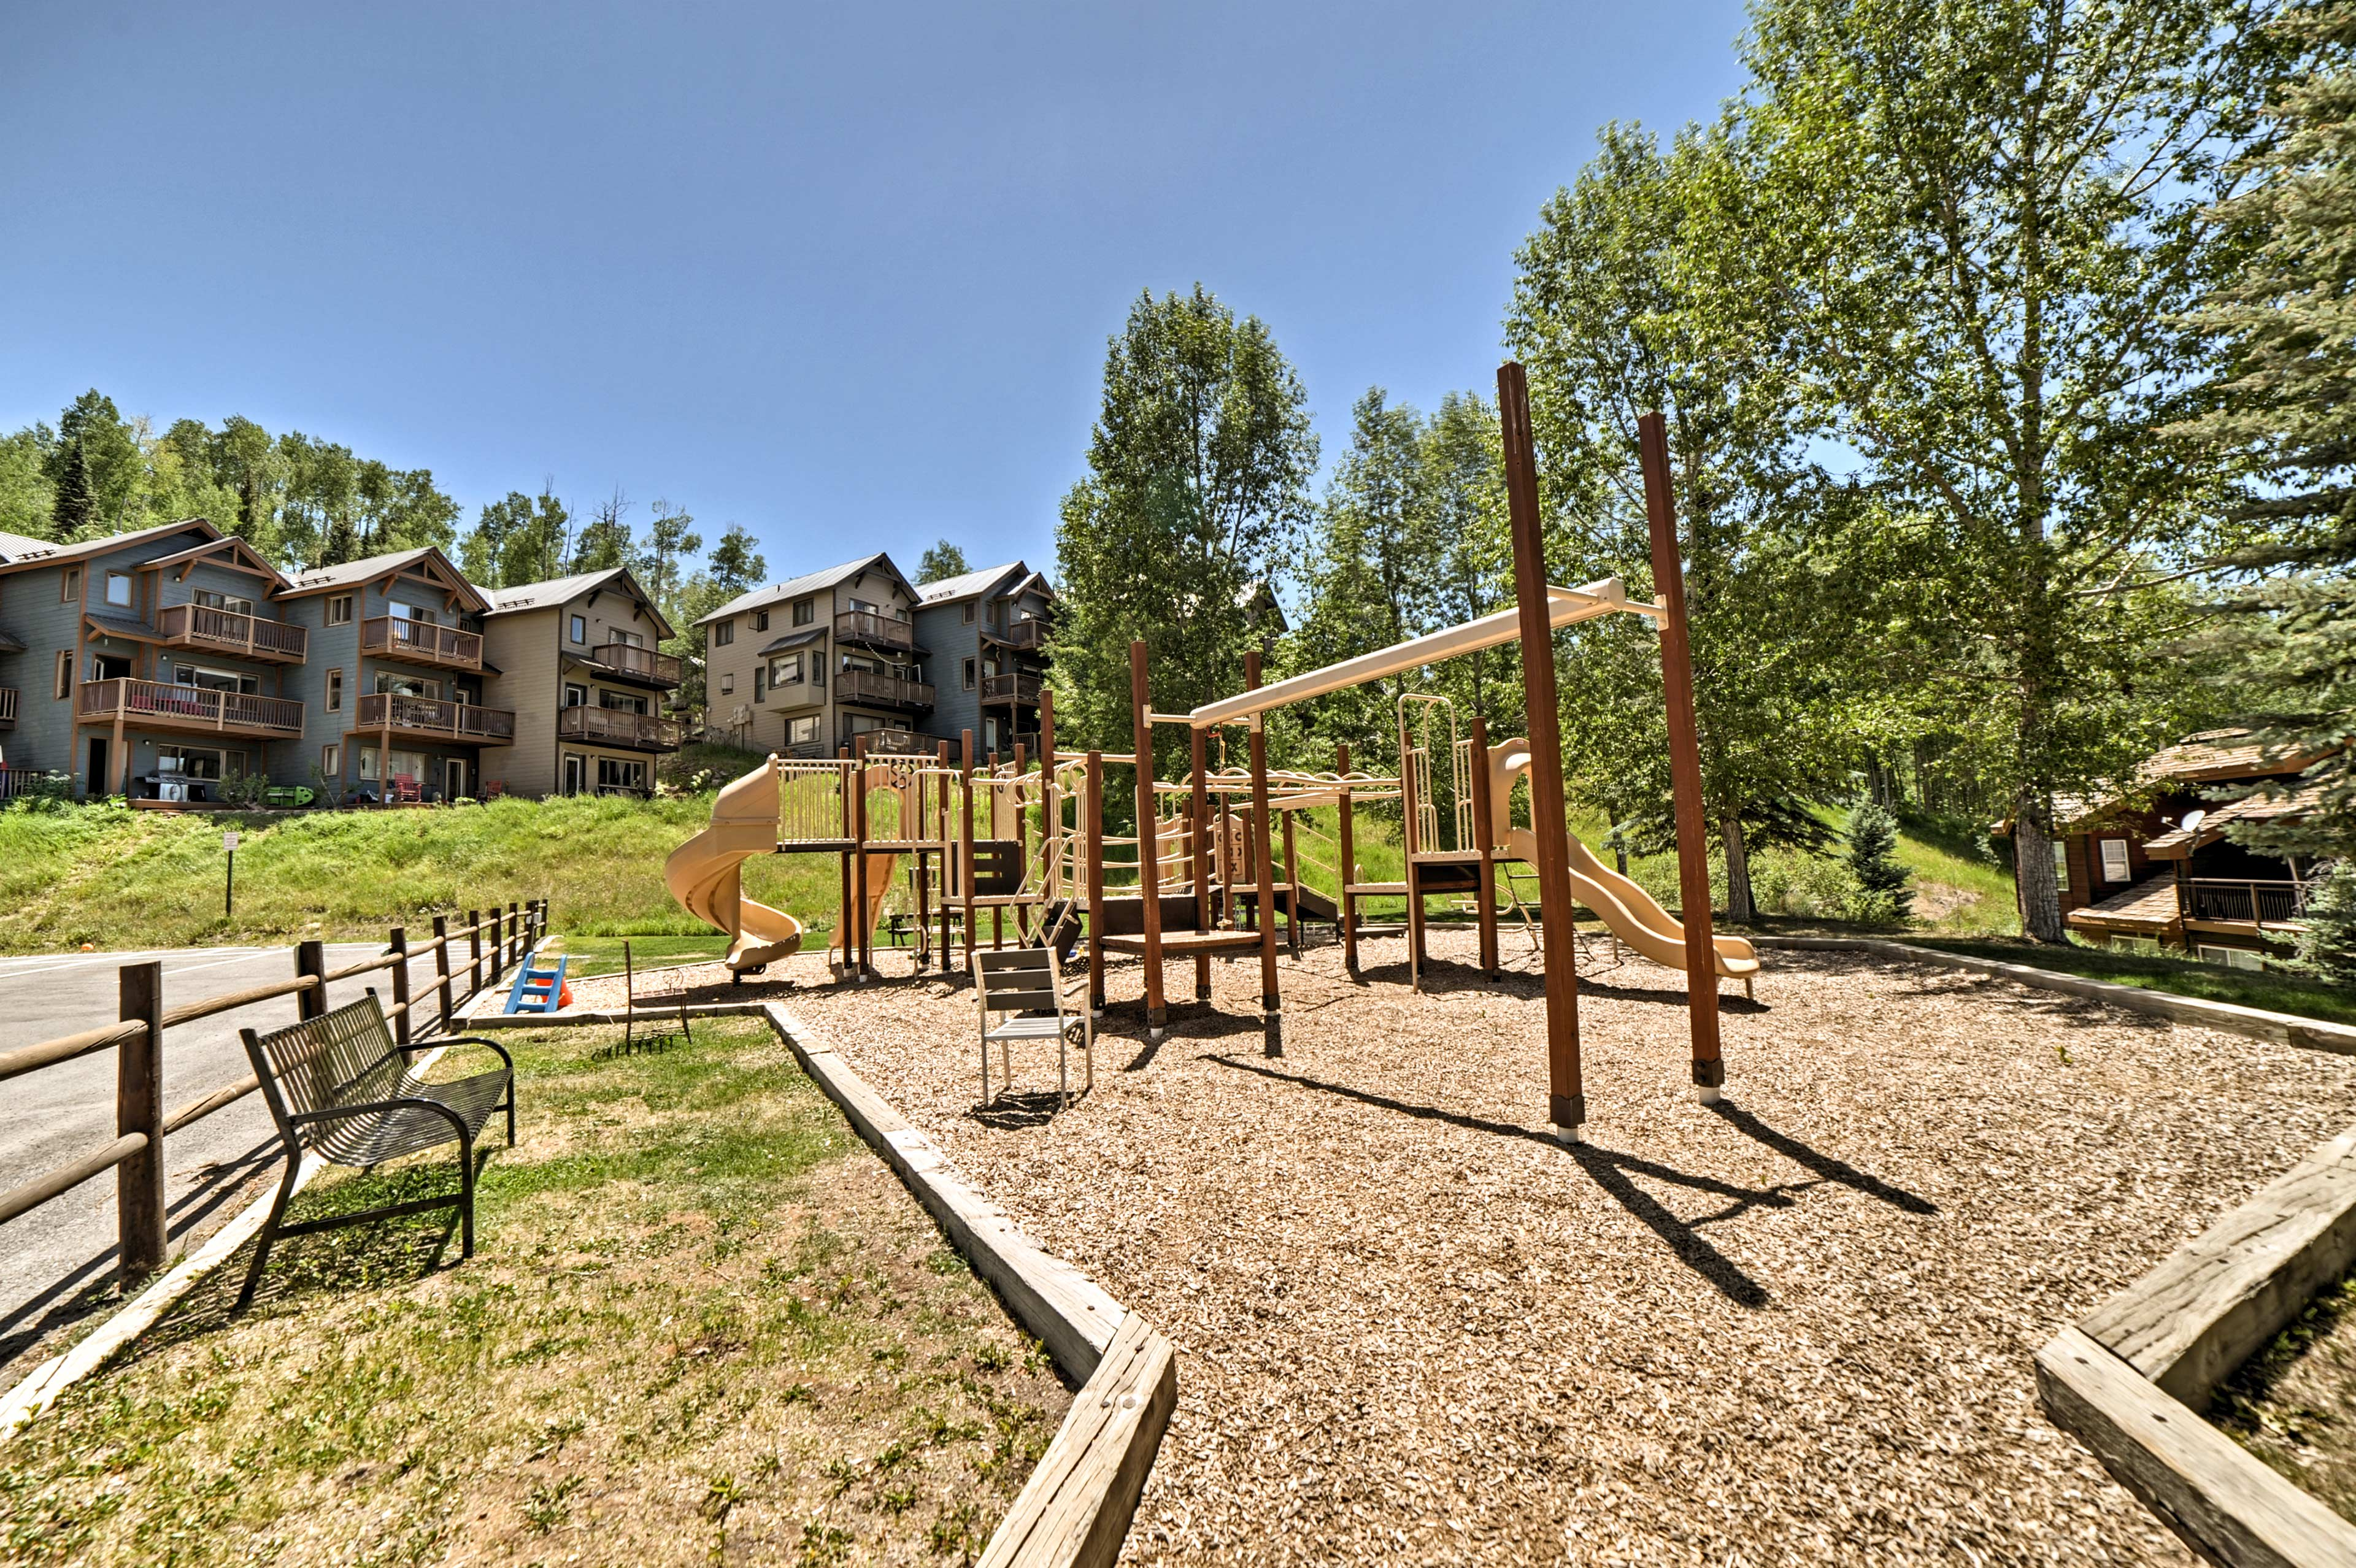 Take the kids to the playground down the hill.